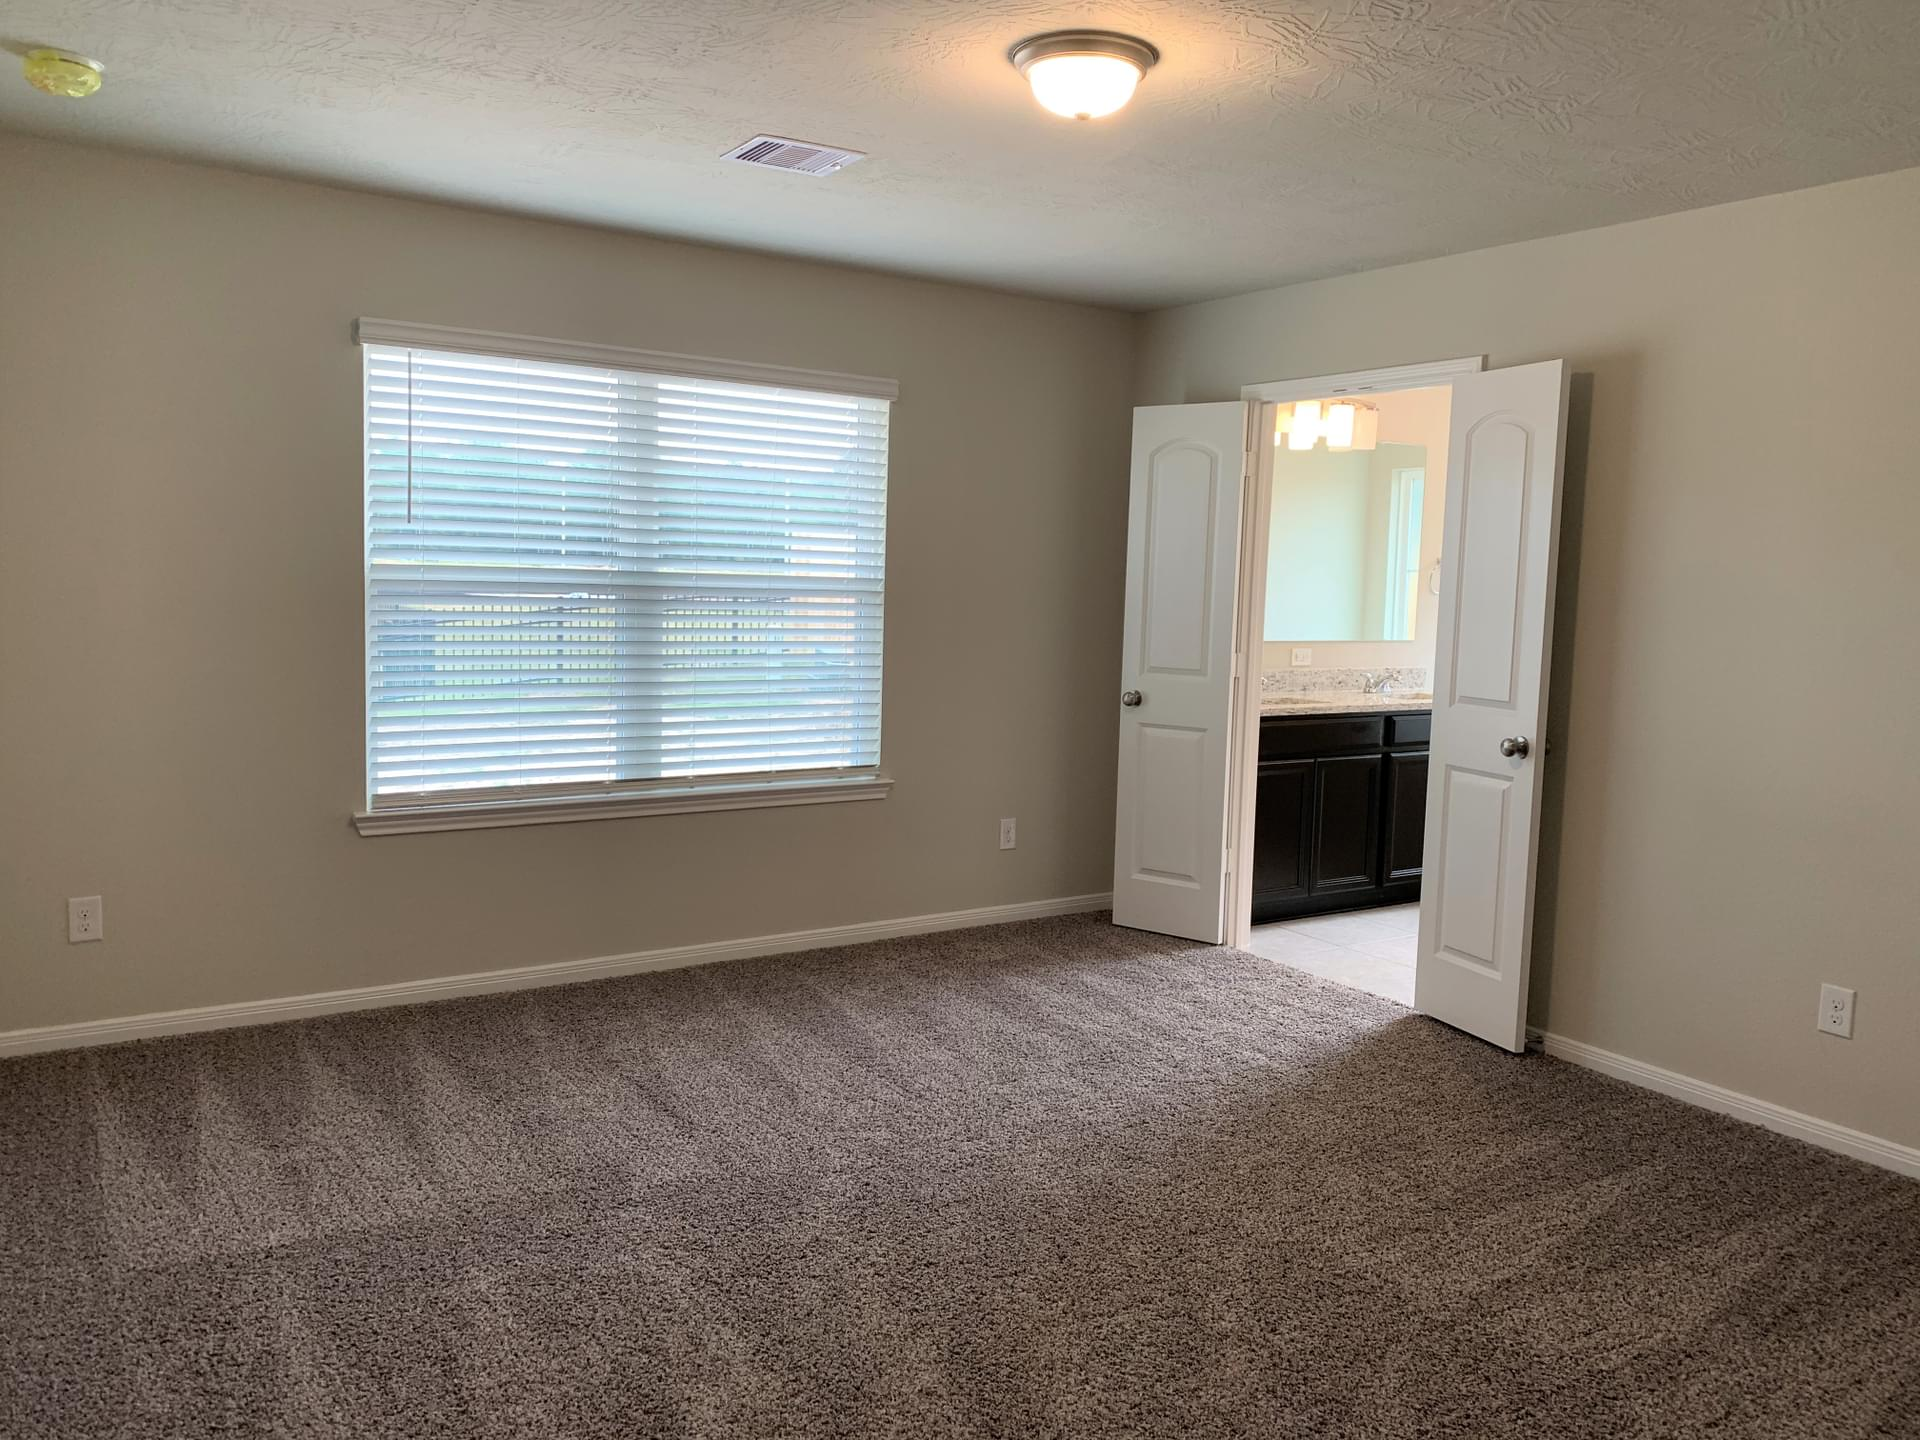 3br New Home in Tomball, TX